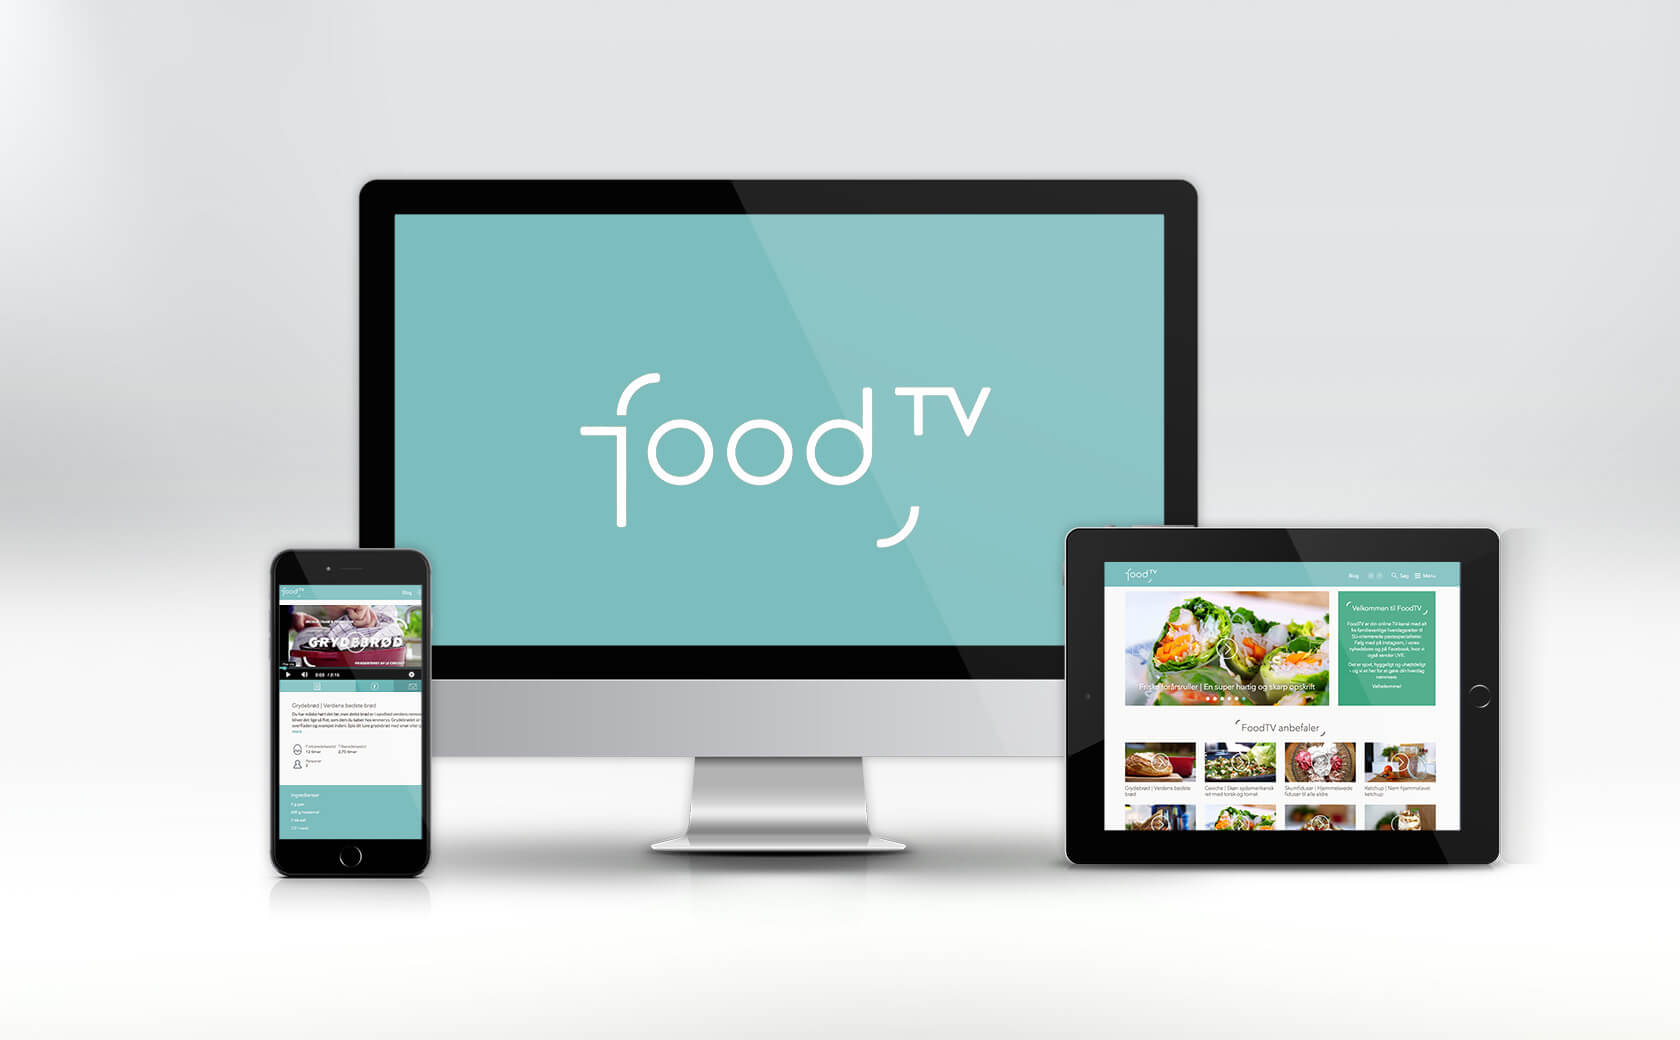 FoodTV website